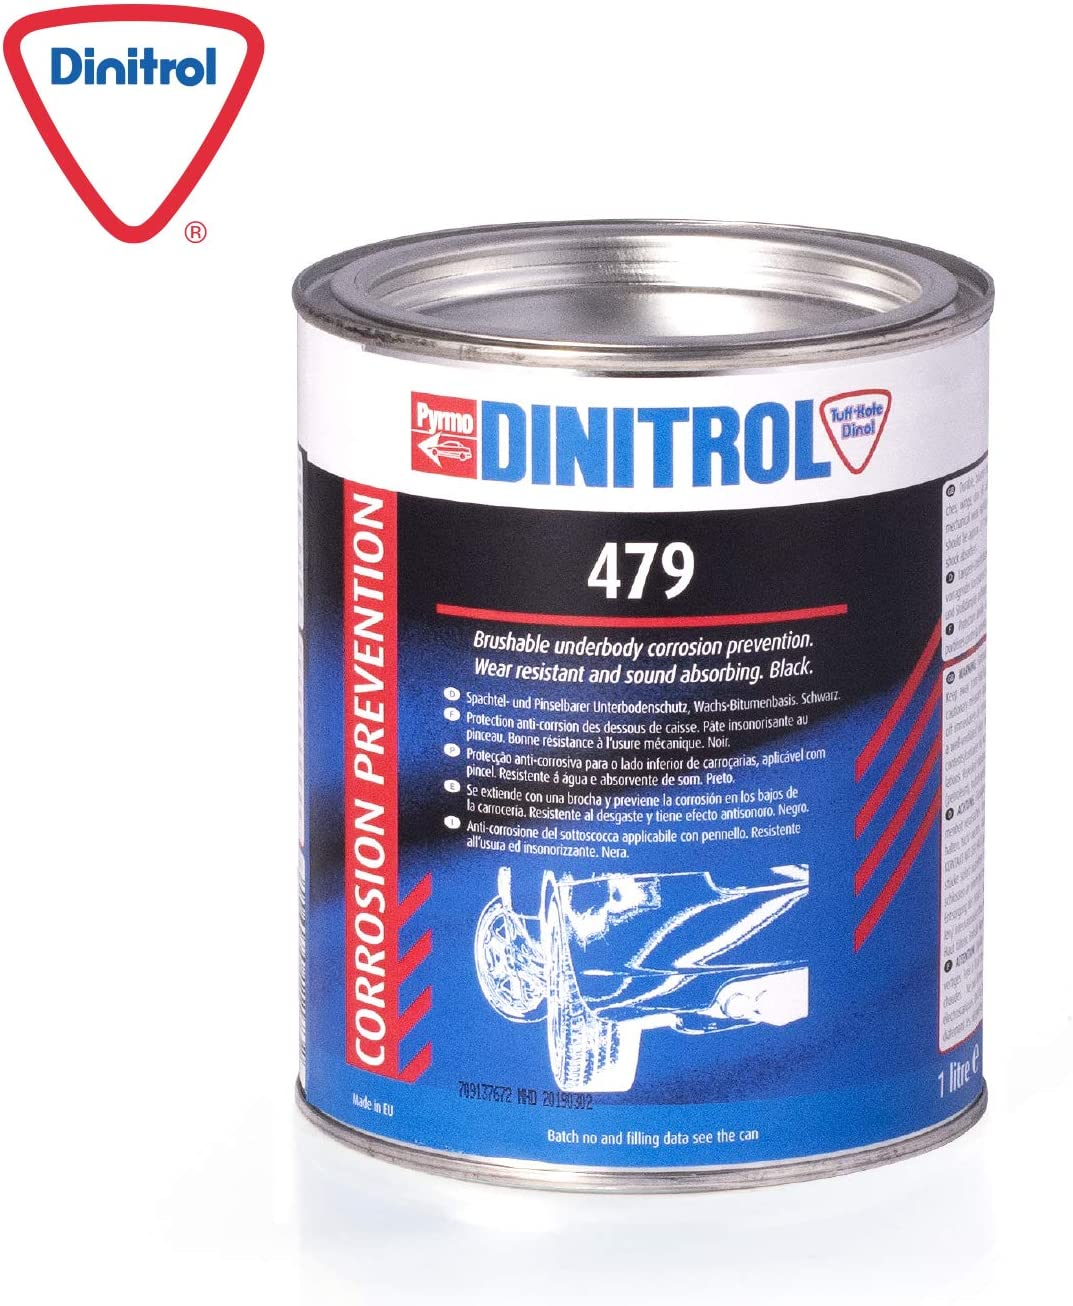 Dinitrol 479 Abrasion Resistant Sound Absorbing Vehicle Underbody Protection 1 Litre Tin Auto